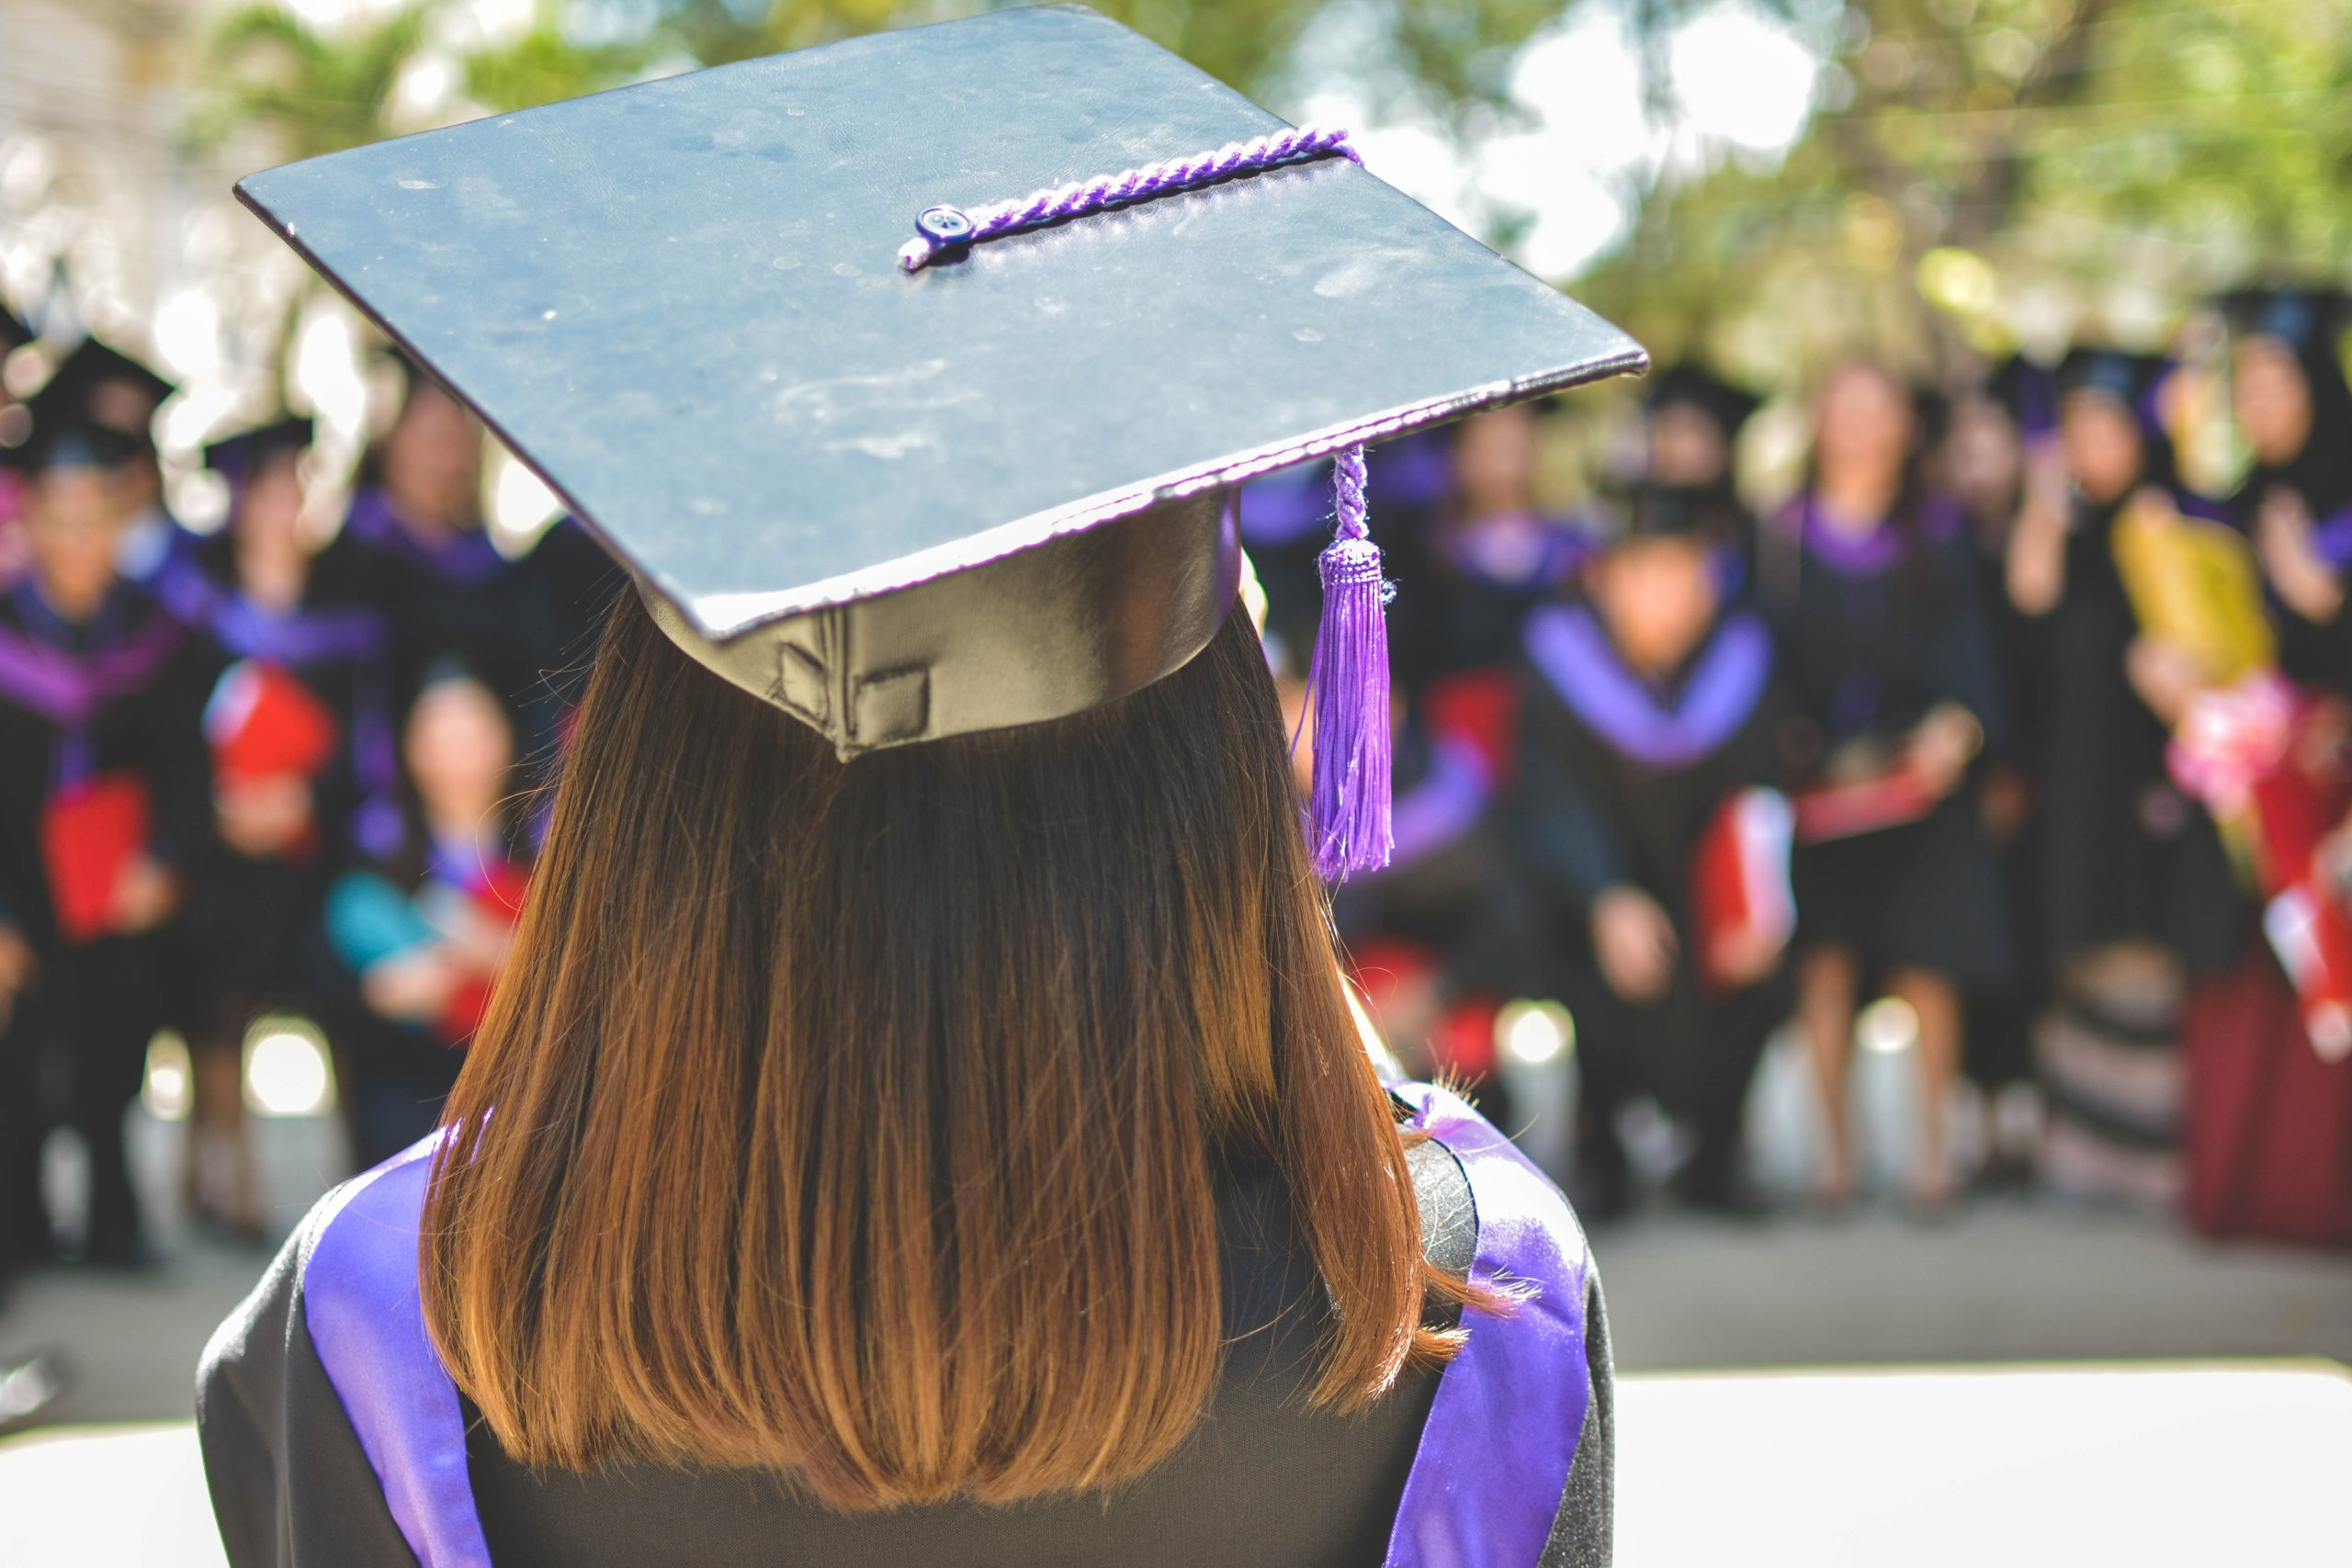 Top 10 Trendy Gifts for Graduation